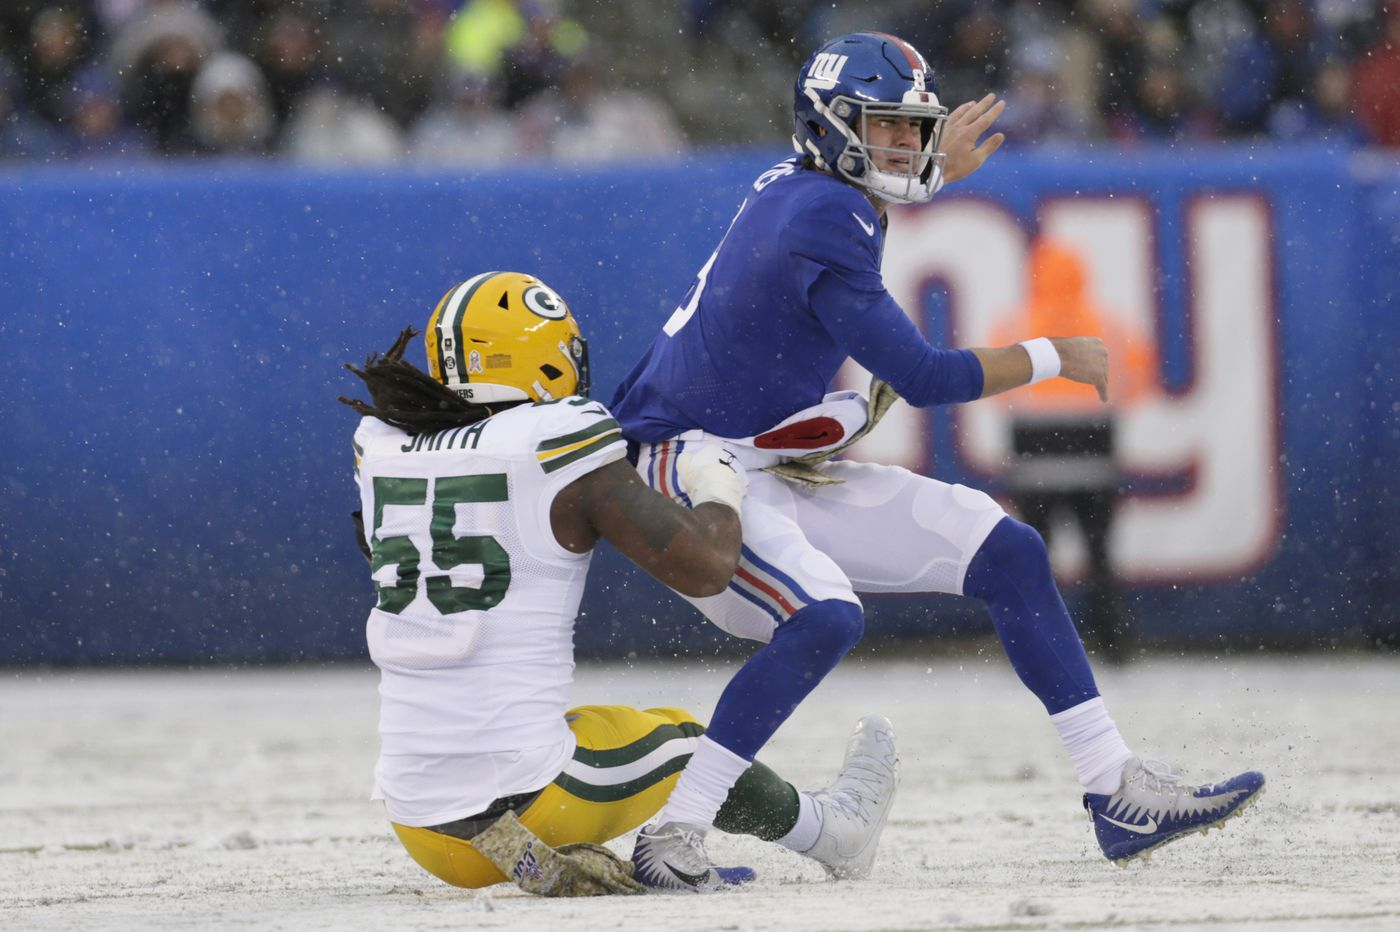 Eagles will likely face Eli Manning as Daniel Jones sits with ankle injury